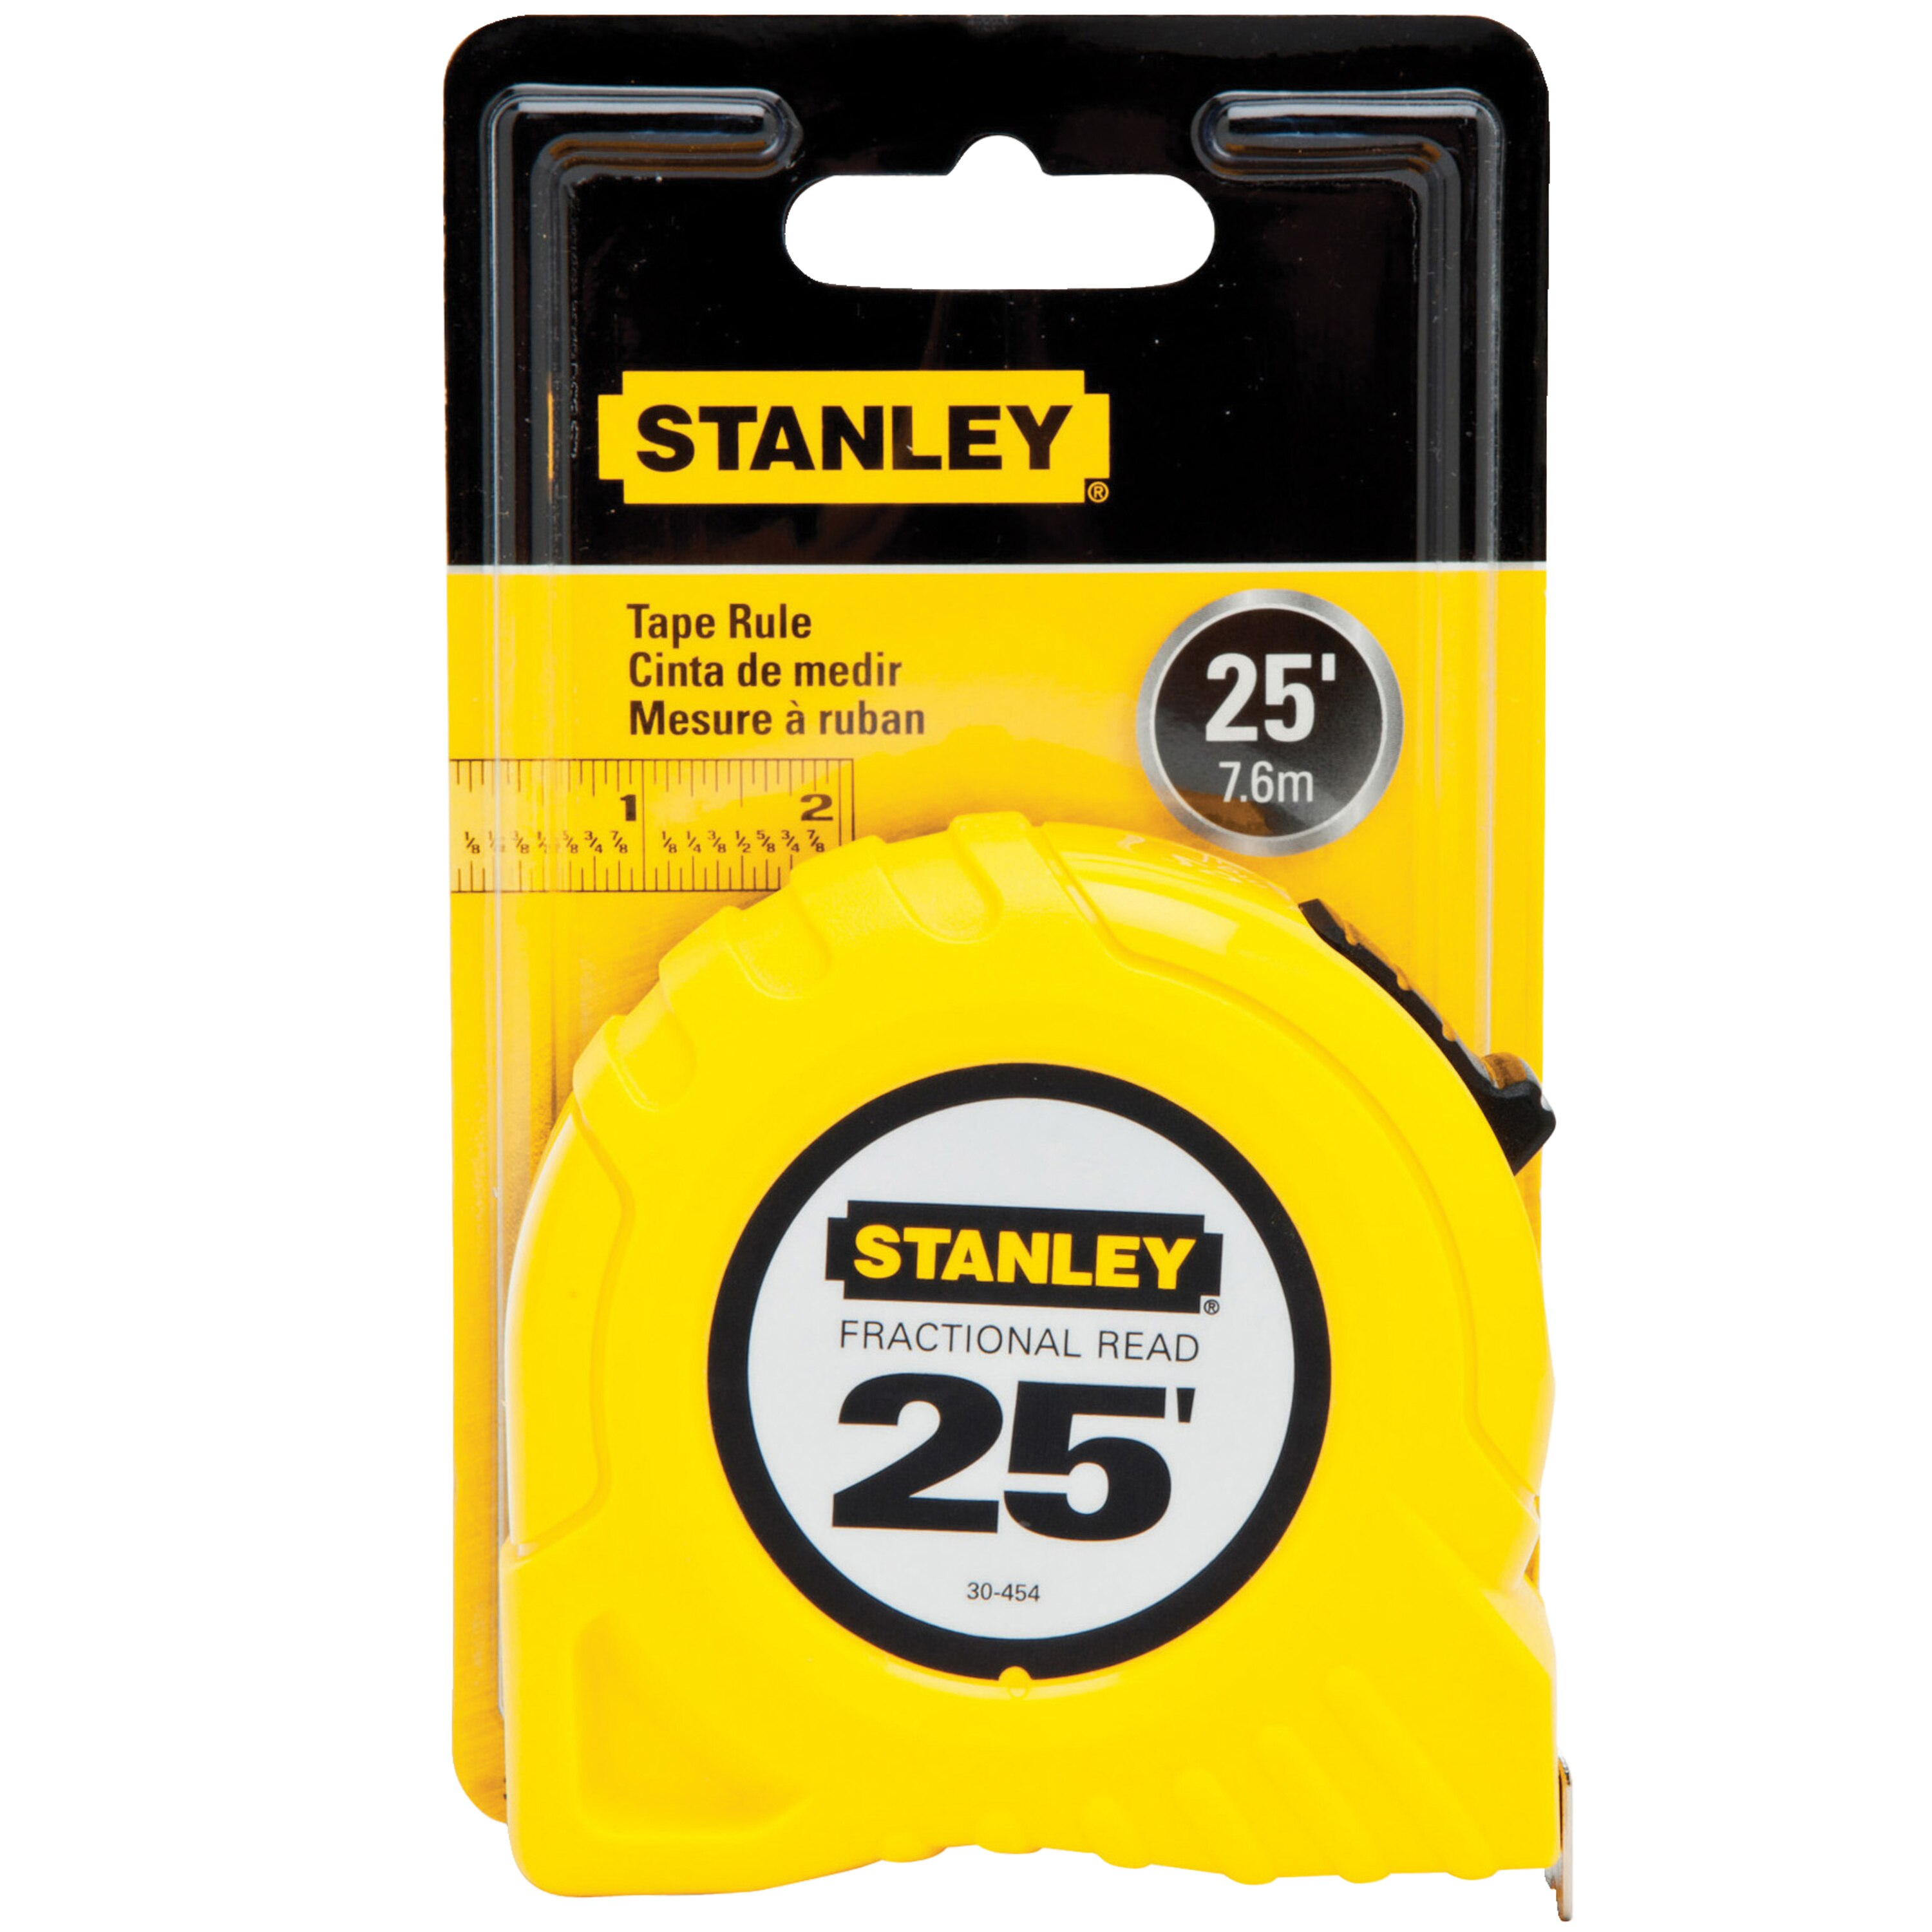 Stanley Tools - 25 ft Fractional Read Tape Measure - 30-454